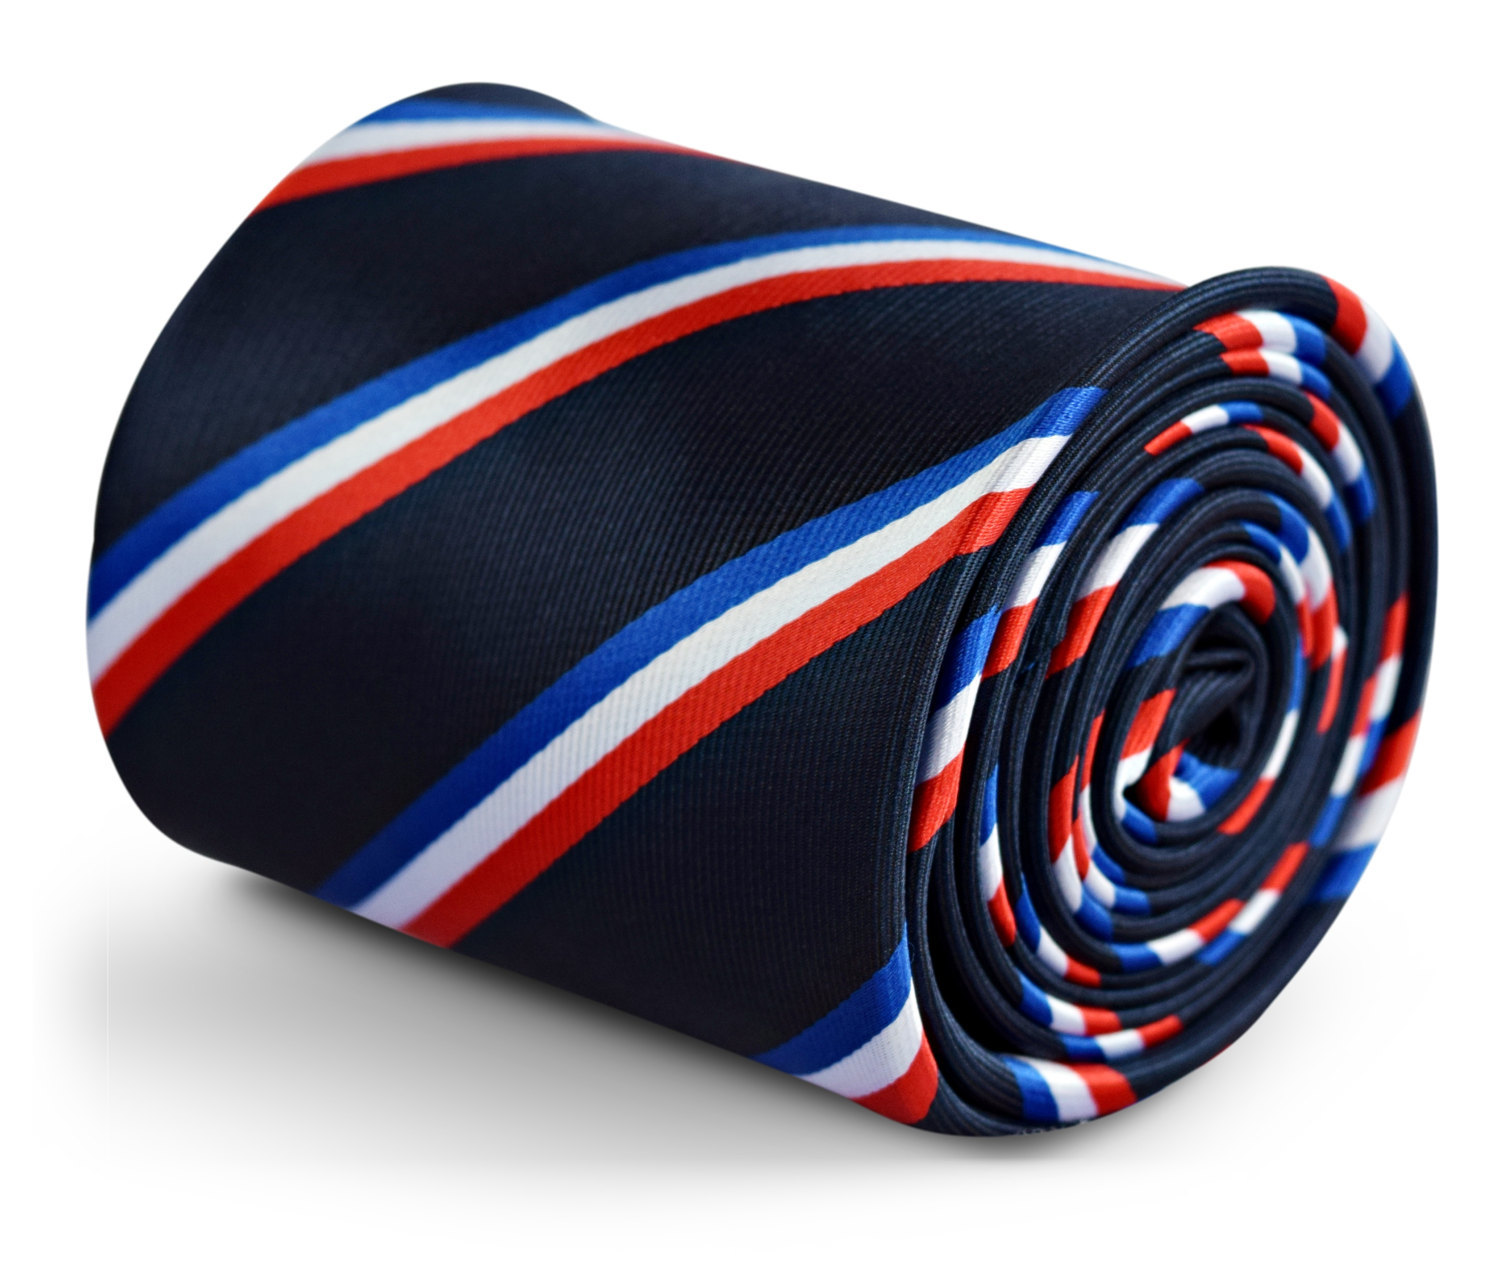 navy tie with French flag red, white and blue stripe with signature floral desig